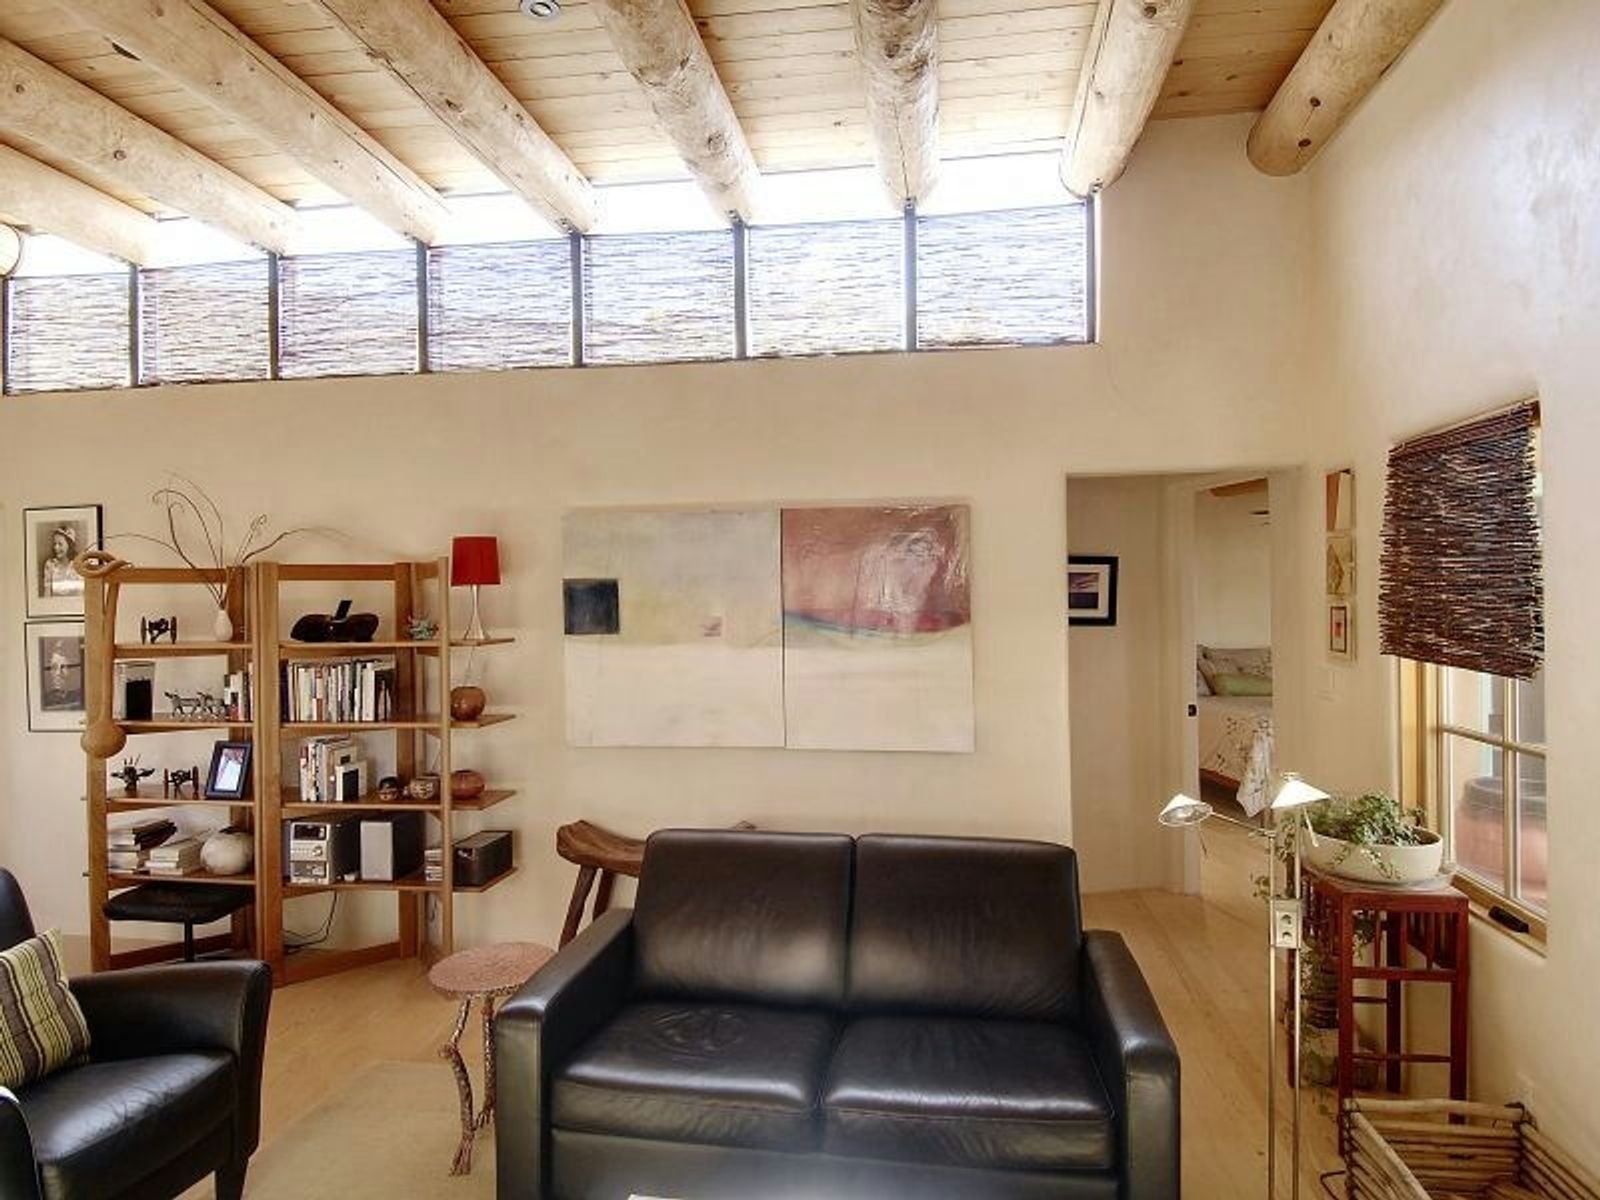 239 Rodriguez St., Santa Fe NM Single Family Home - Santa Fe Real Estate